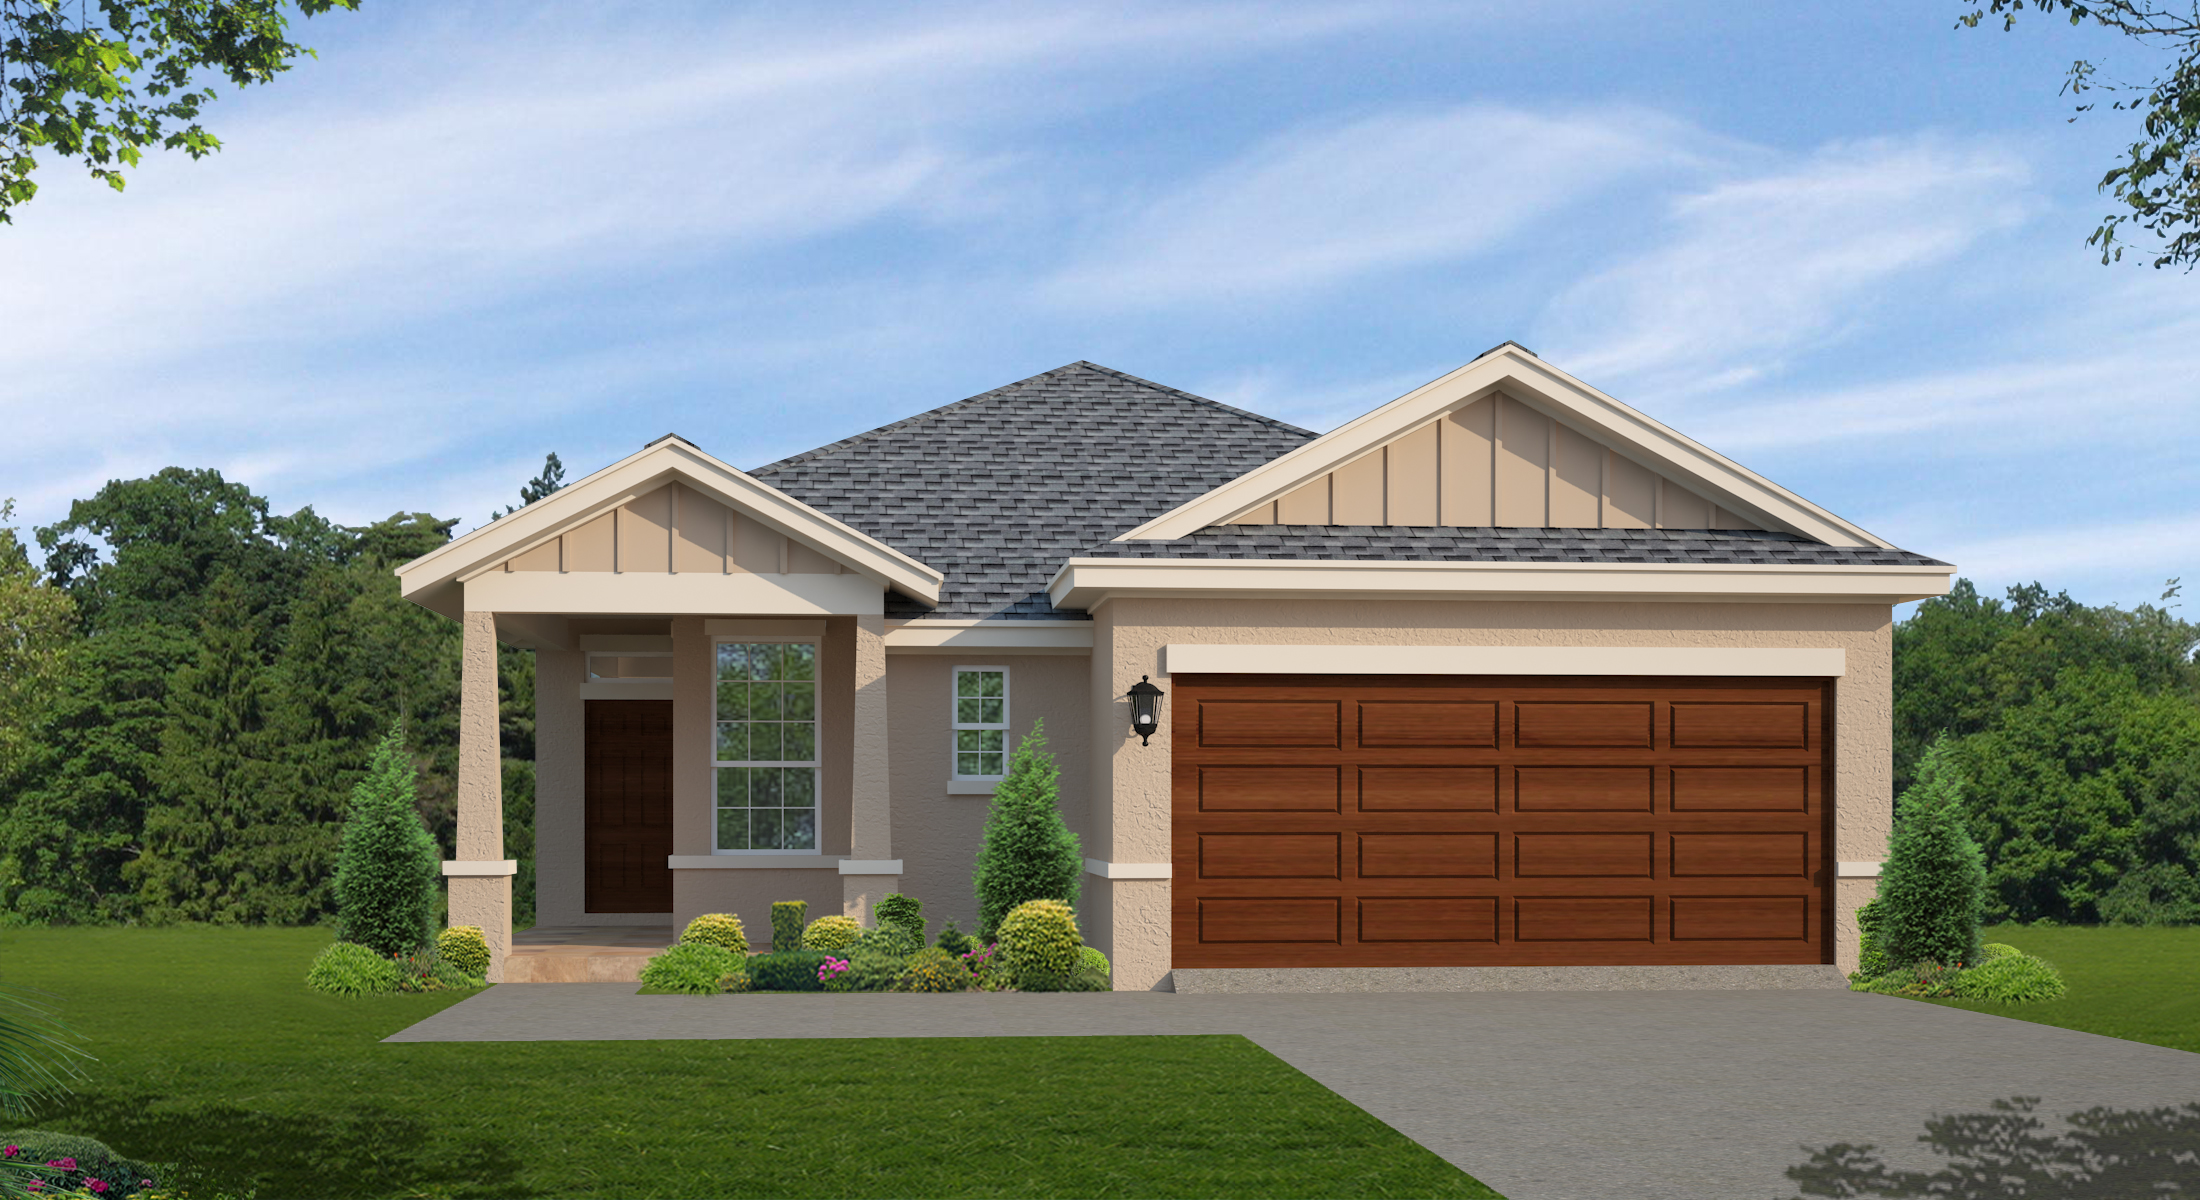 The Catania | Elevation B | $278,990